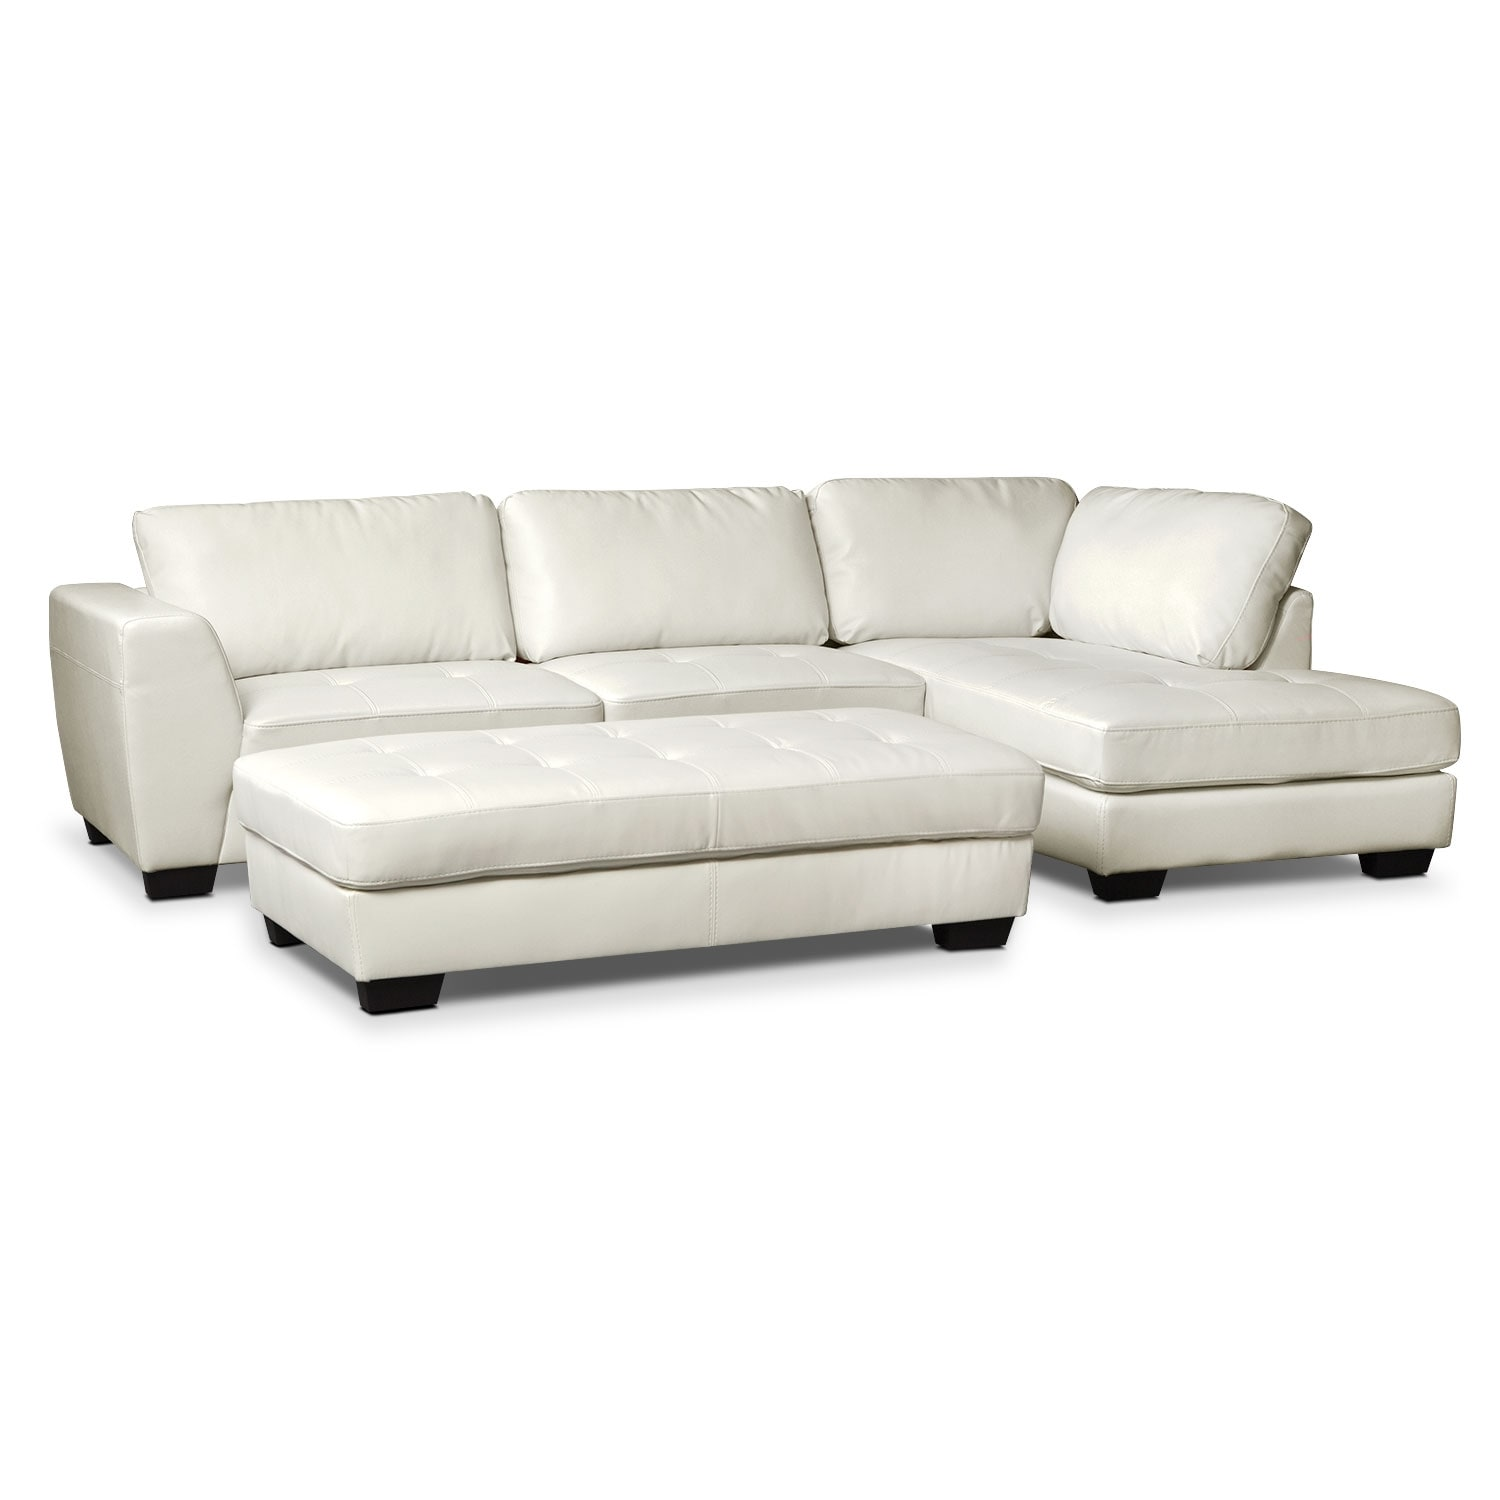 Ciera White 2-Piece Right-Facing Sectional and Cocktail Ottoman